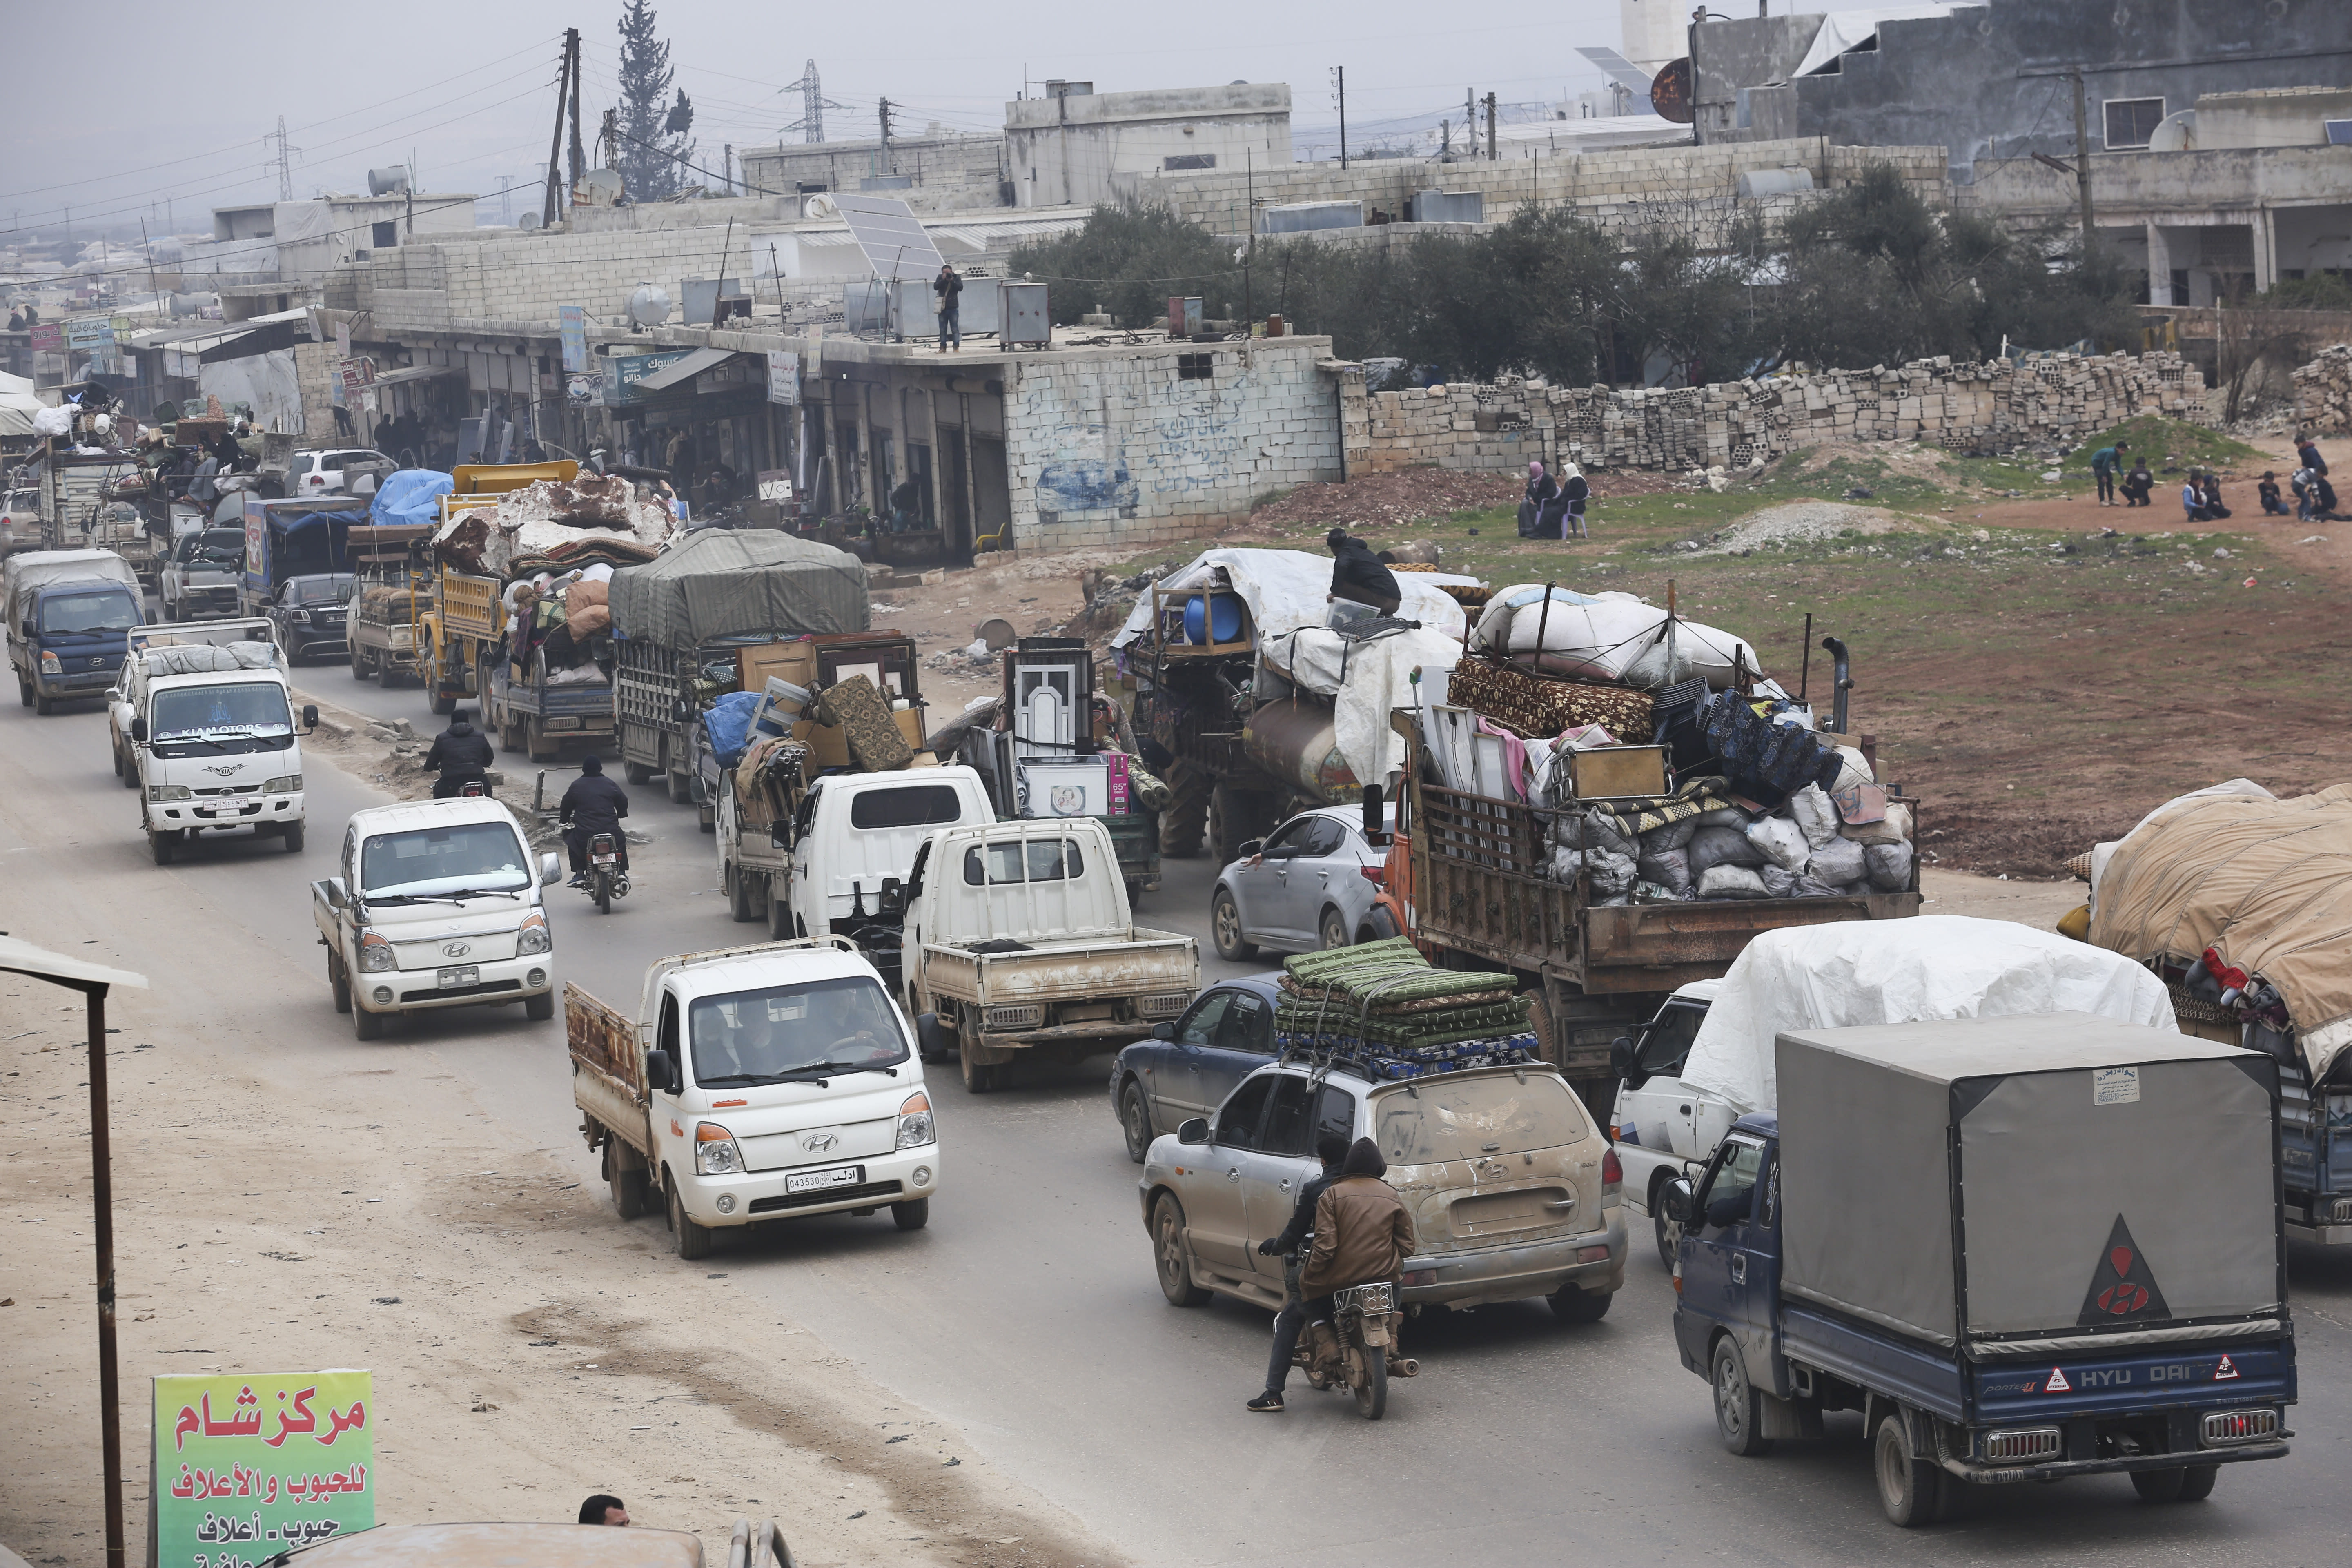 Russian airstrikes hit hospital in Syria's Idlib - war monitor says